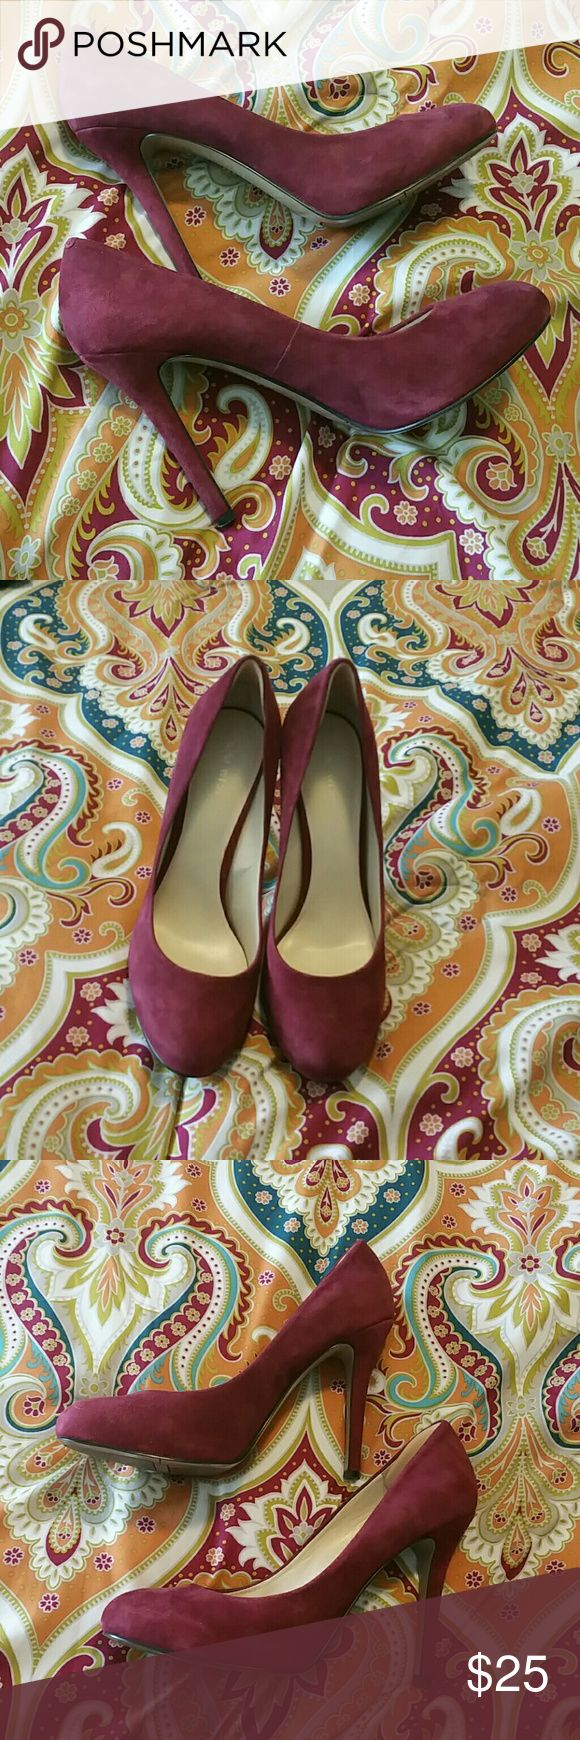 "Nine West pumps Nine West pumps, sz 8.5, maroon, 4.5"" heel, platform Nine West Shoes Heels"